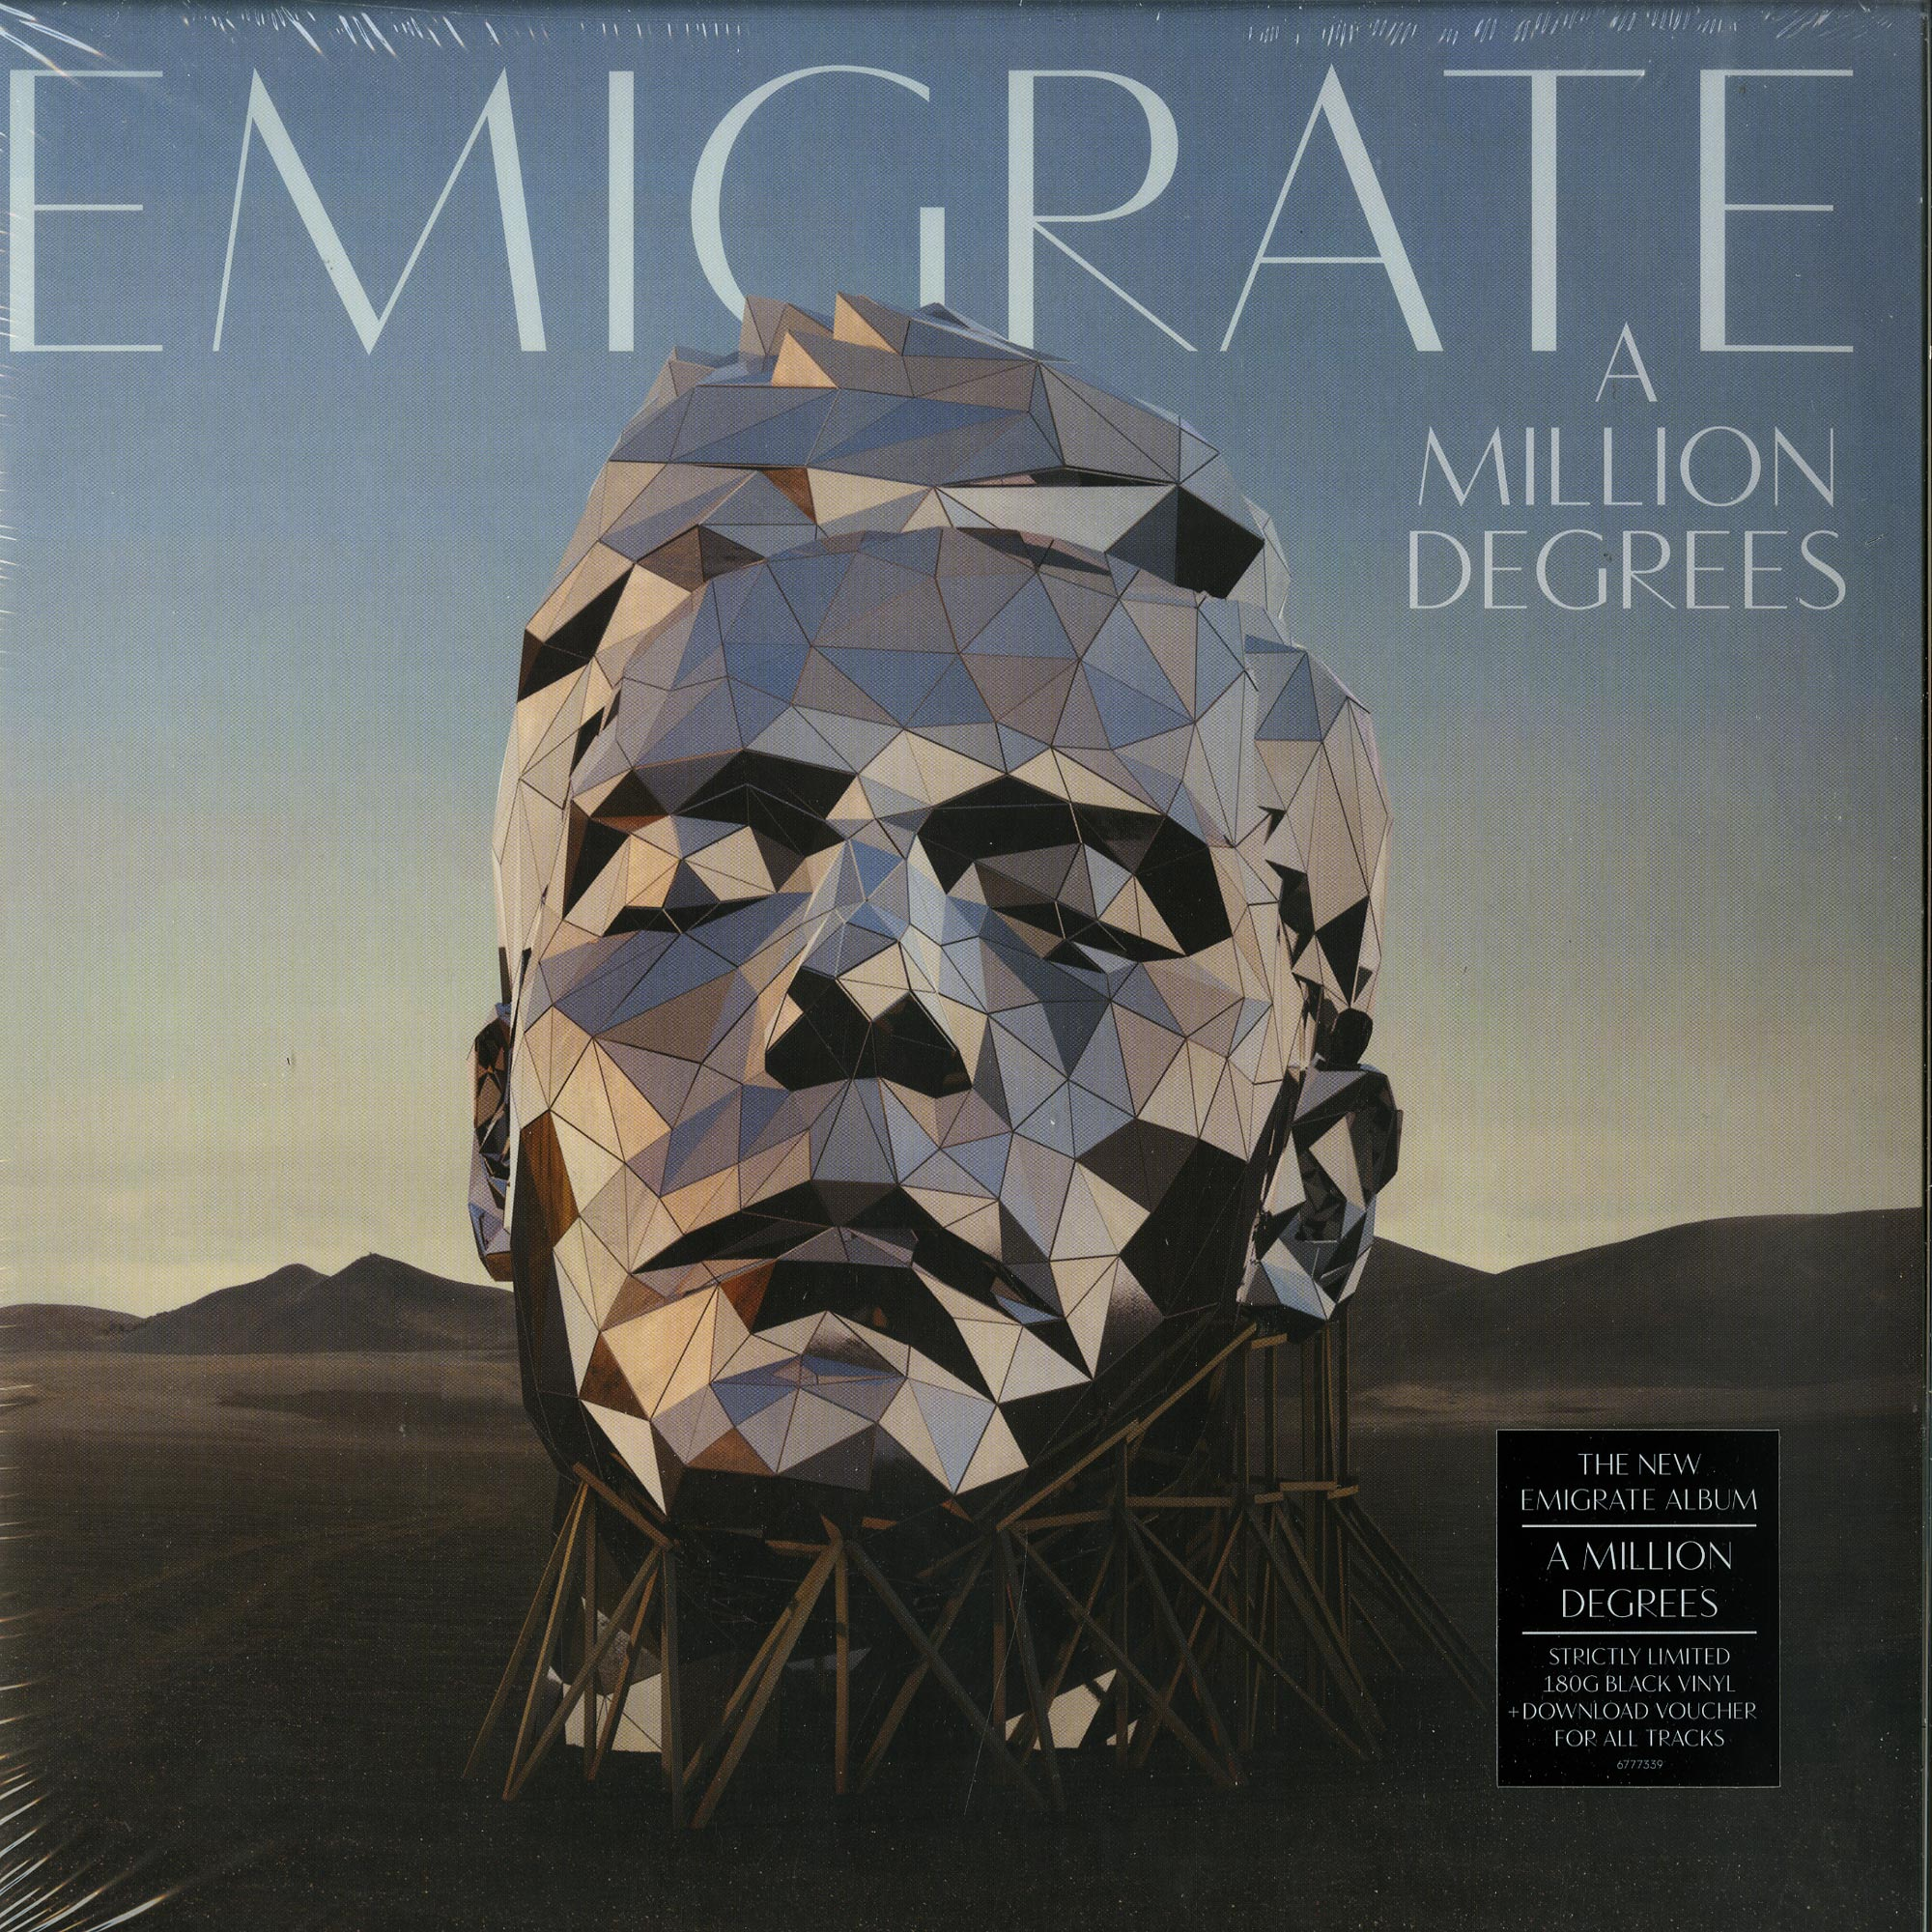 Emigrate - A MILLION DEGREES